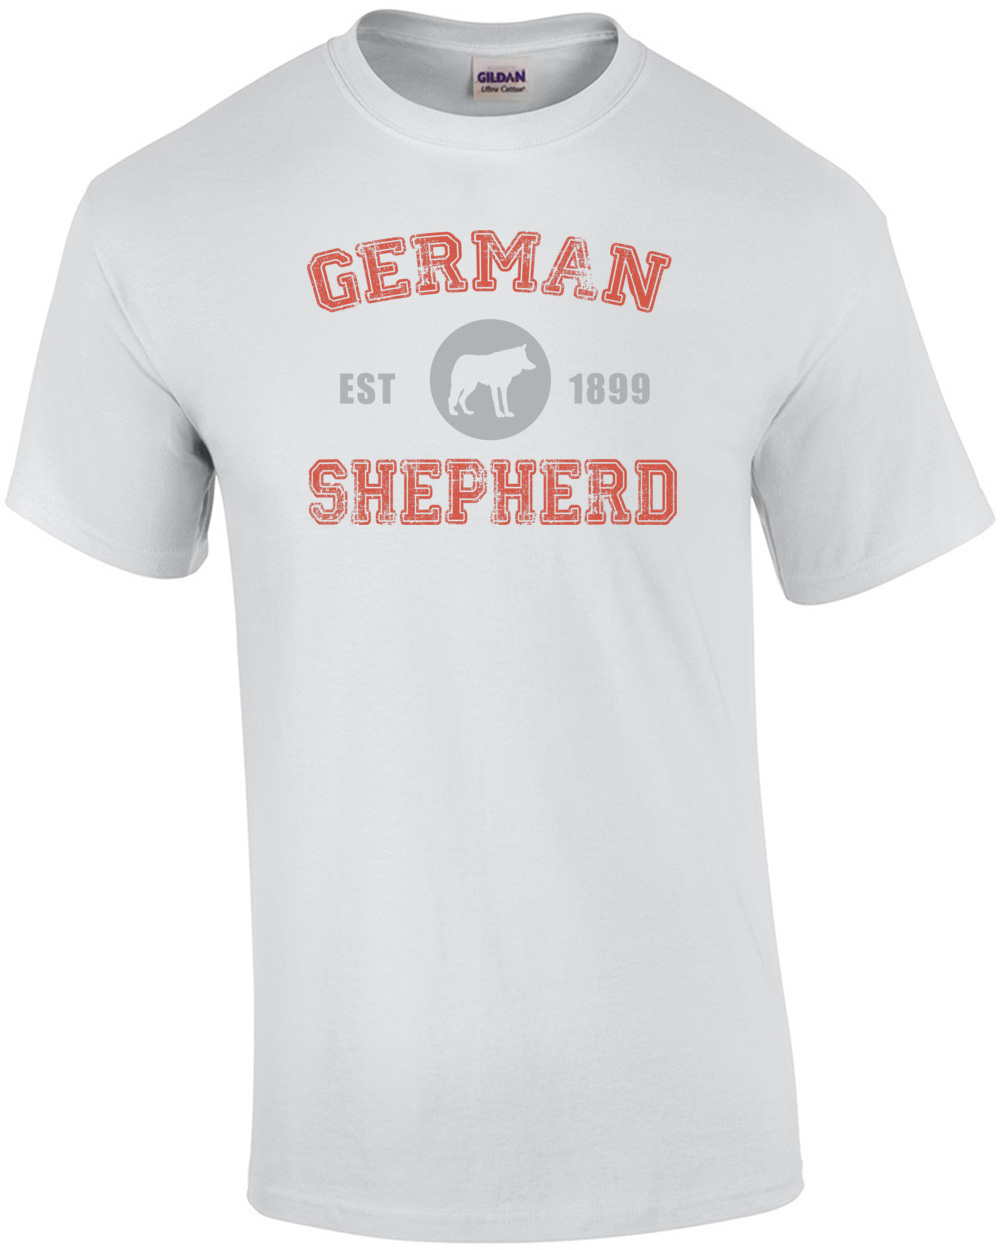 German shepherd est 1899 german shepherd t shirt geenschuldenfo Image collections